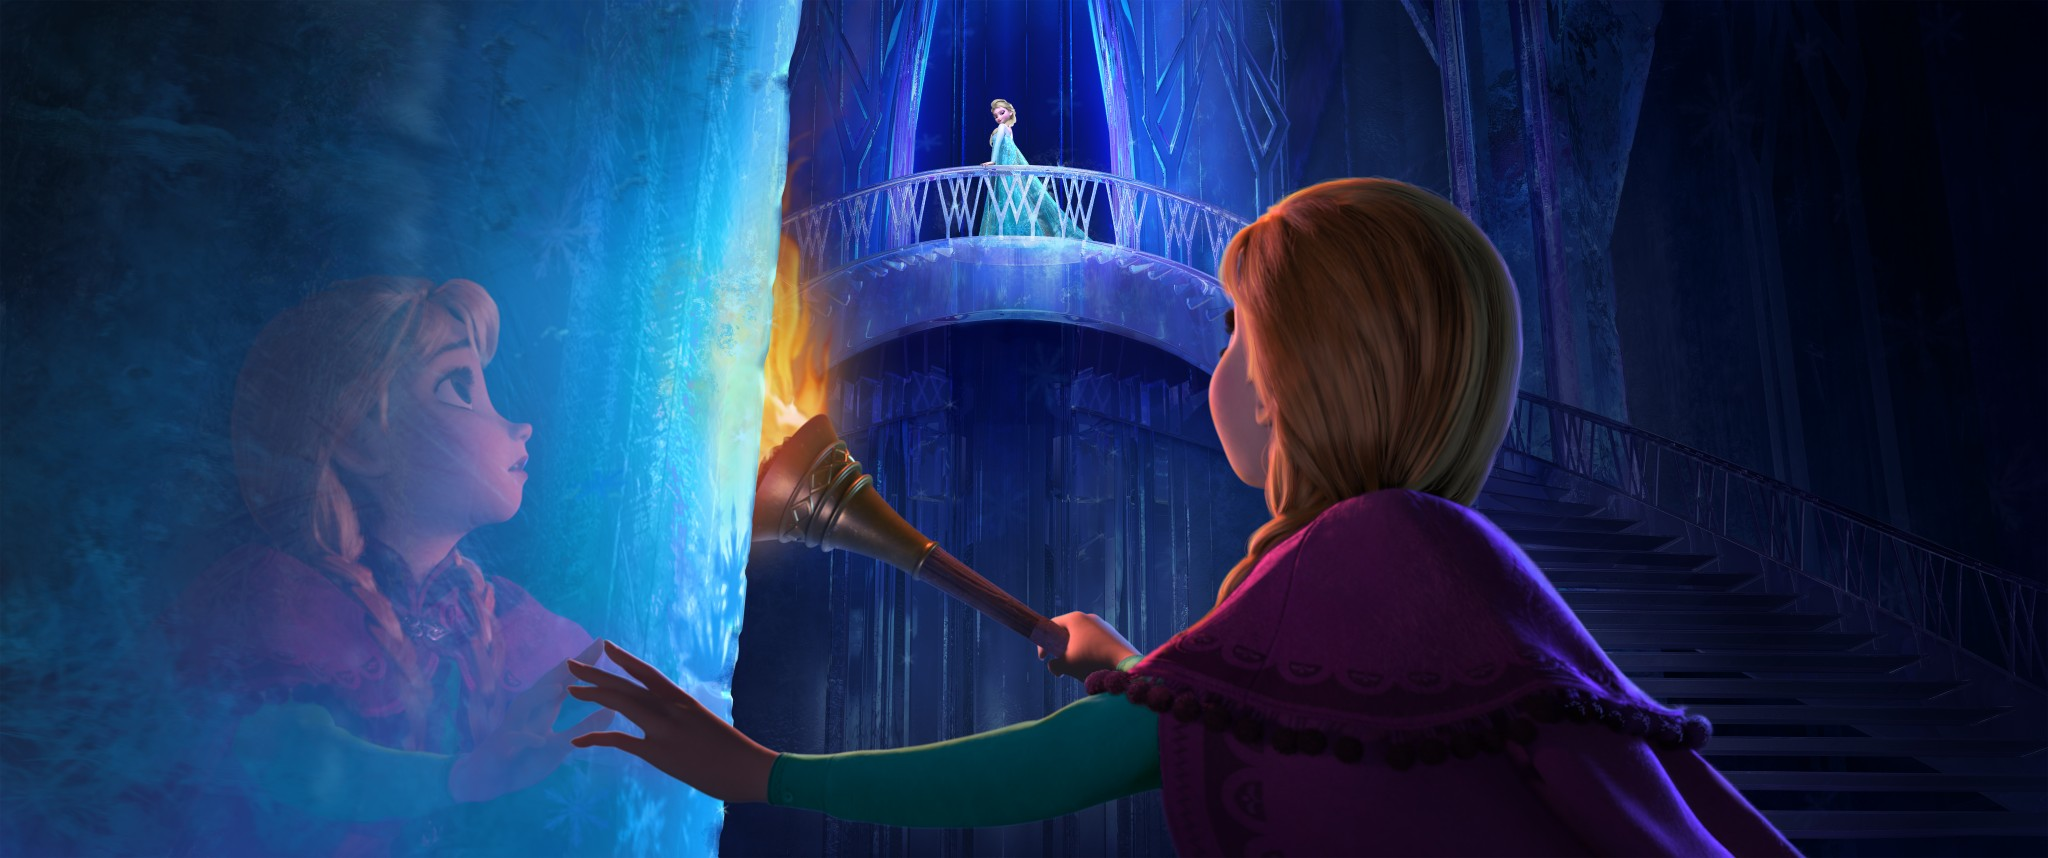 """""""FROZEN"""" (Top to Bottom) ELSA and ANNA. ©2013 Disney. All Rights Reserved."""